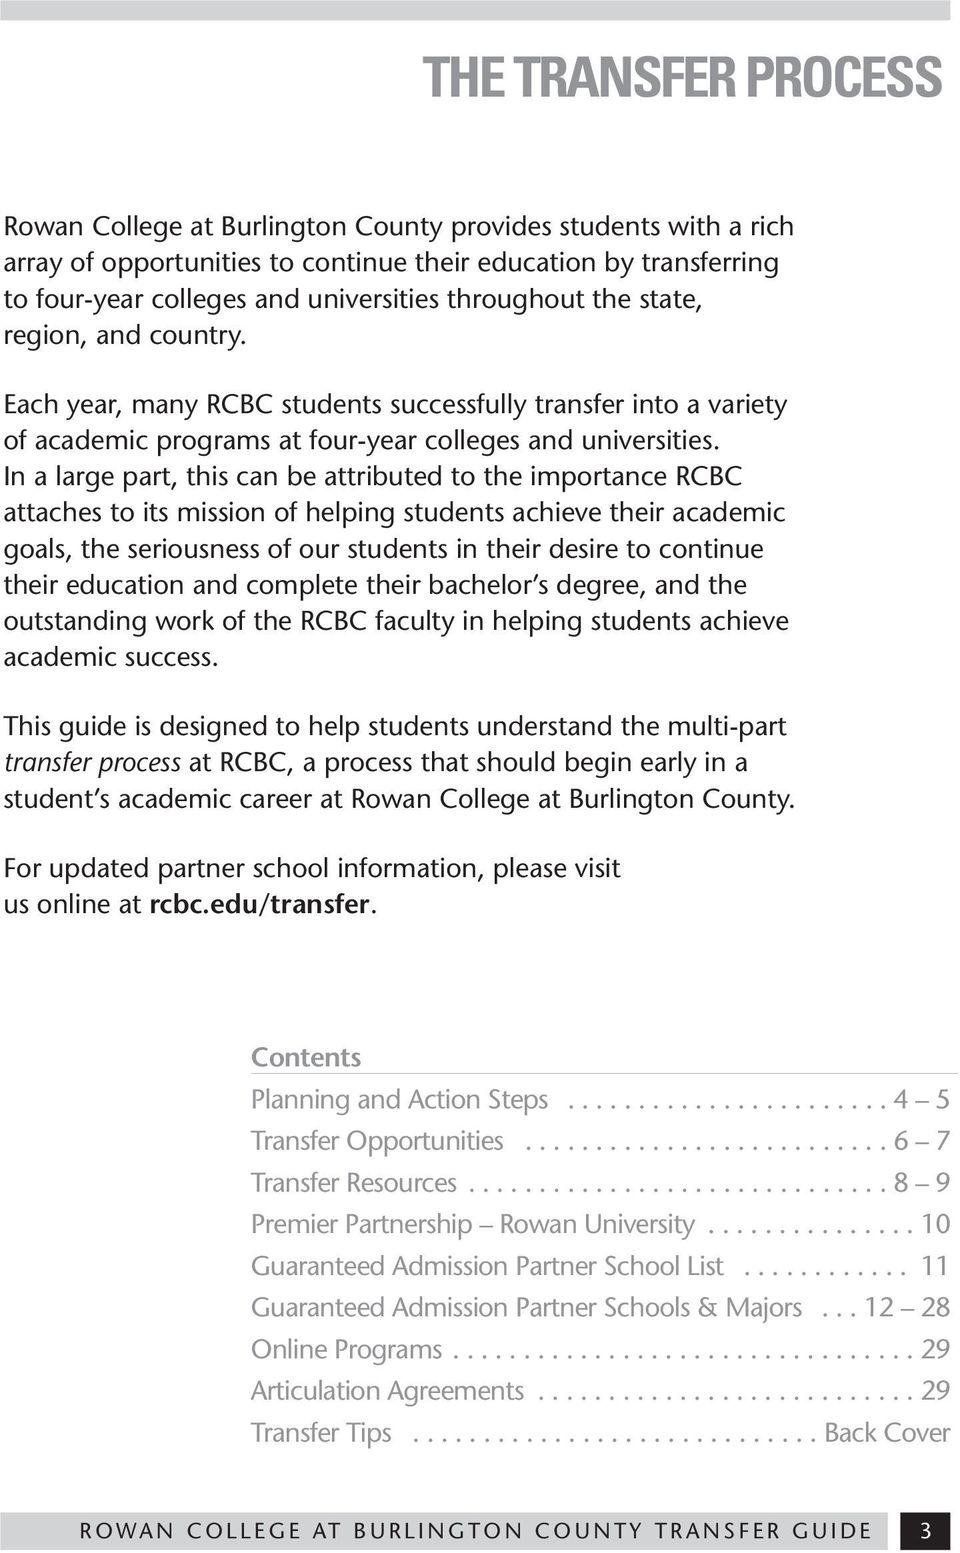 In a large part, this can be attributed to the importance RCBC attaches to its mission of helping students achieve their academic goals, the seriousness of our students in their desire to continue